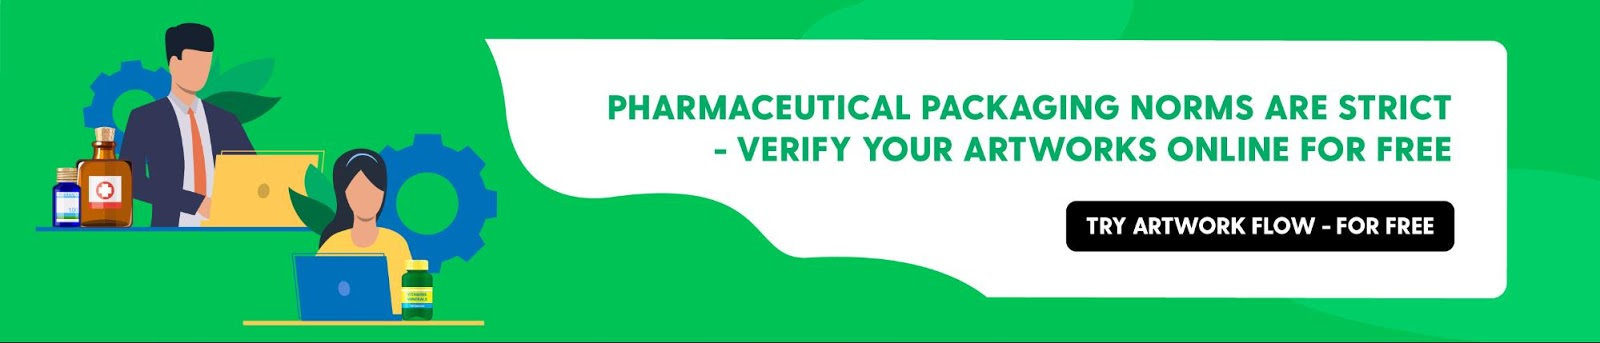 Pharmaceutical Packaging Norms are Strict - Verify Your Artworks Online for FreeTry Artwork Flow - for FREE.https://artwork.bizongo.com/sign-up